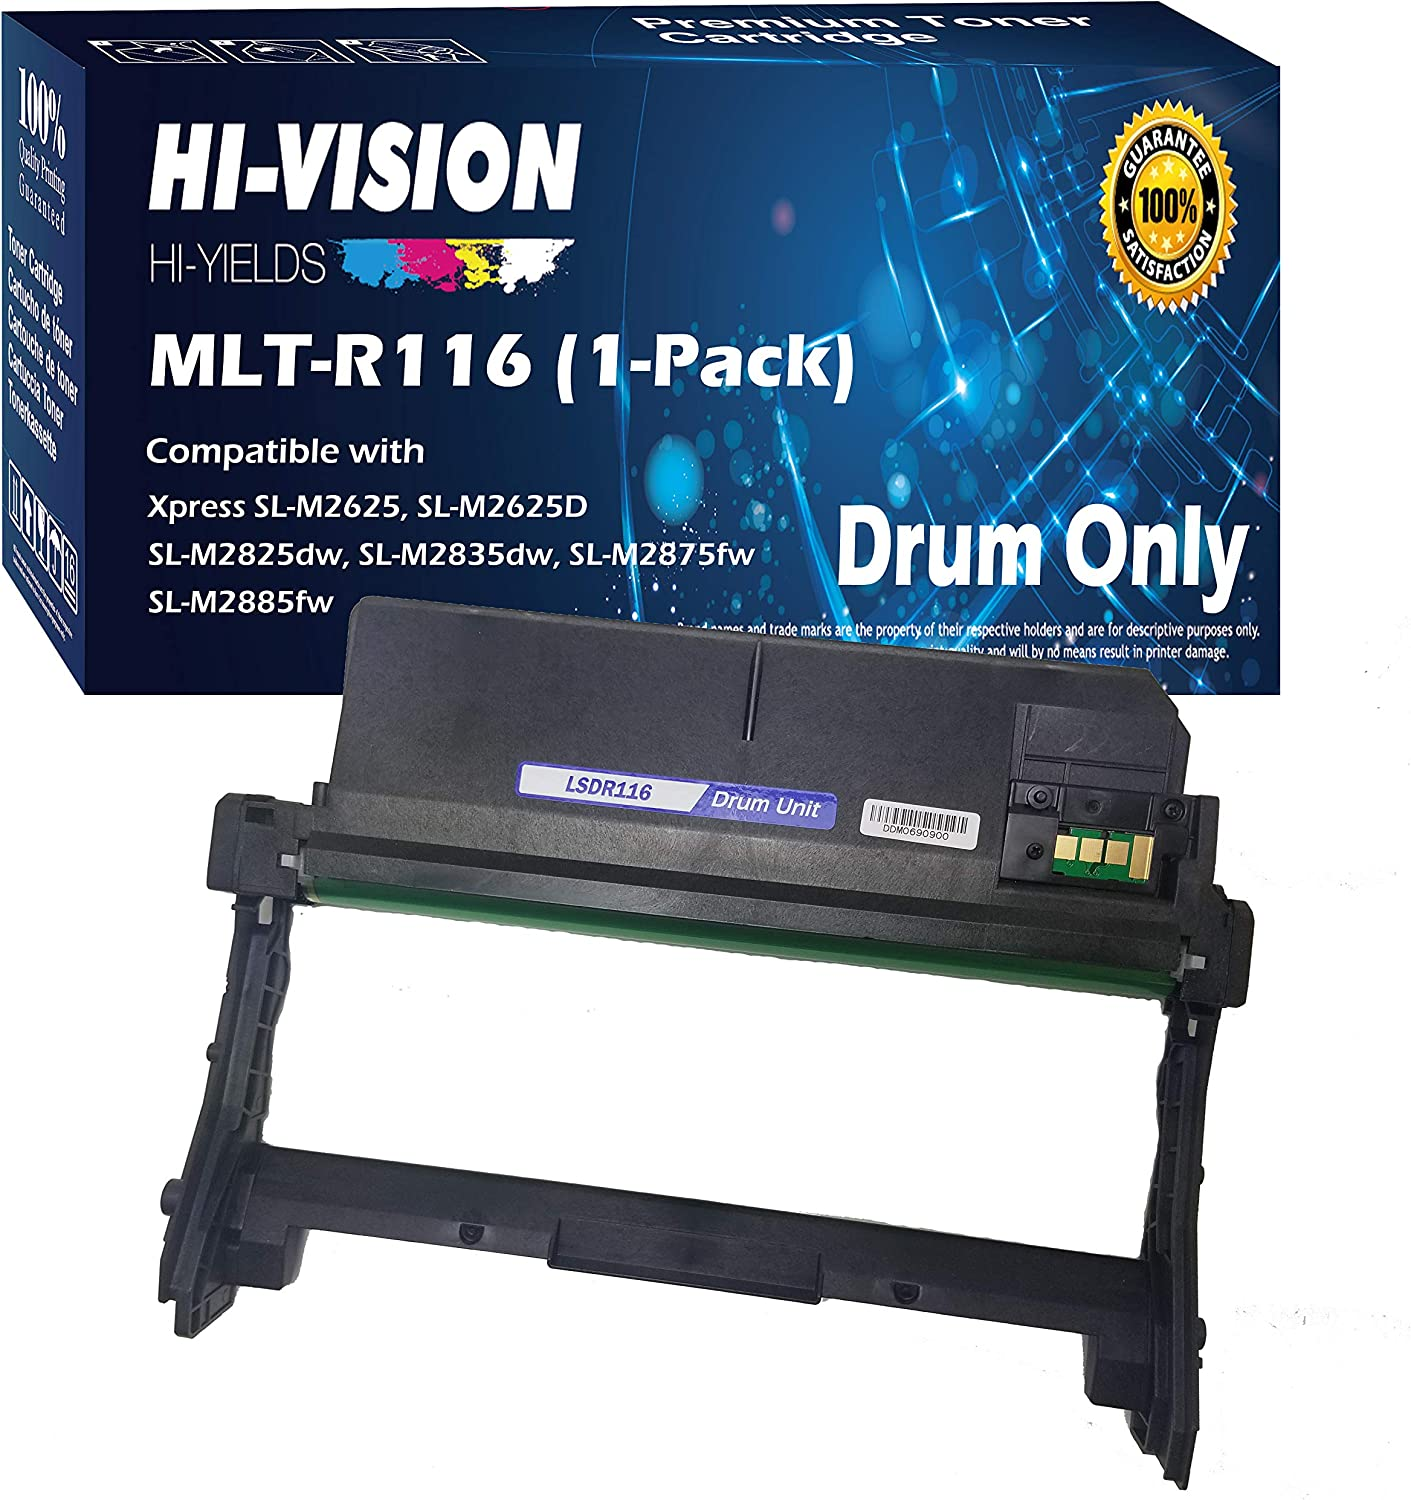 HI-VISION HI-YIELDS Compatible MLT-R116 Drum Unit Replacement for Samsung MLTR116 R116 use with Xpress SL-M2835DW M2885FW M2875FW M2825DW M2625 M2625D M2626D M2676N M2836 (1x Drum Unit, 1-Pack)